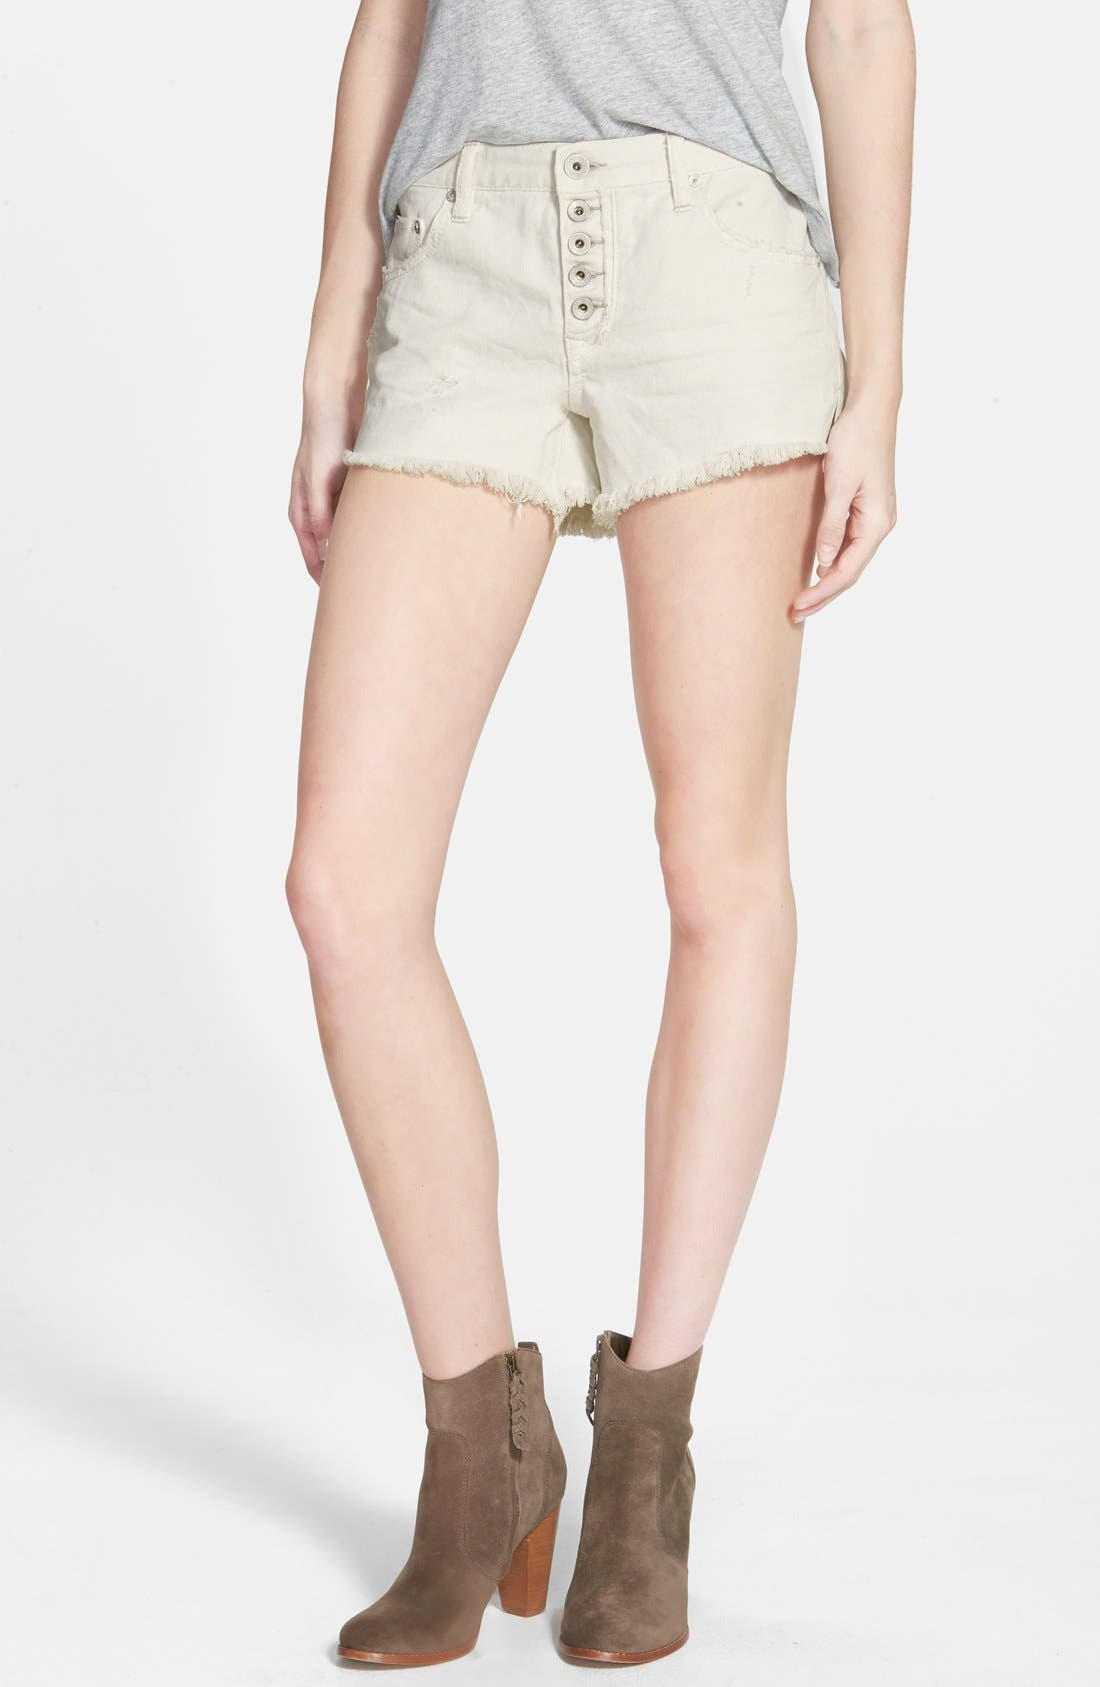 Alternate Image 1 Selected - Free People 'Runaway' Cutoff Denim Shorts (Polar White)